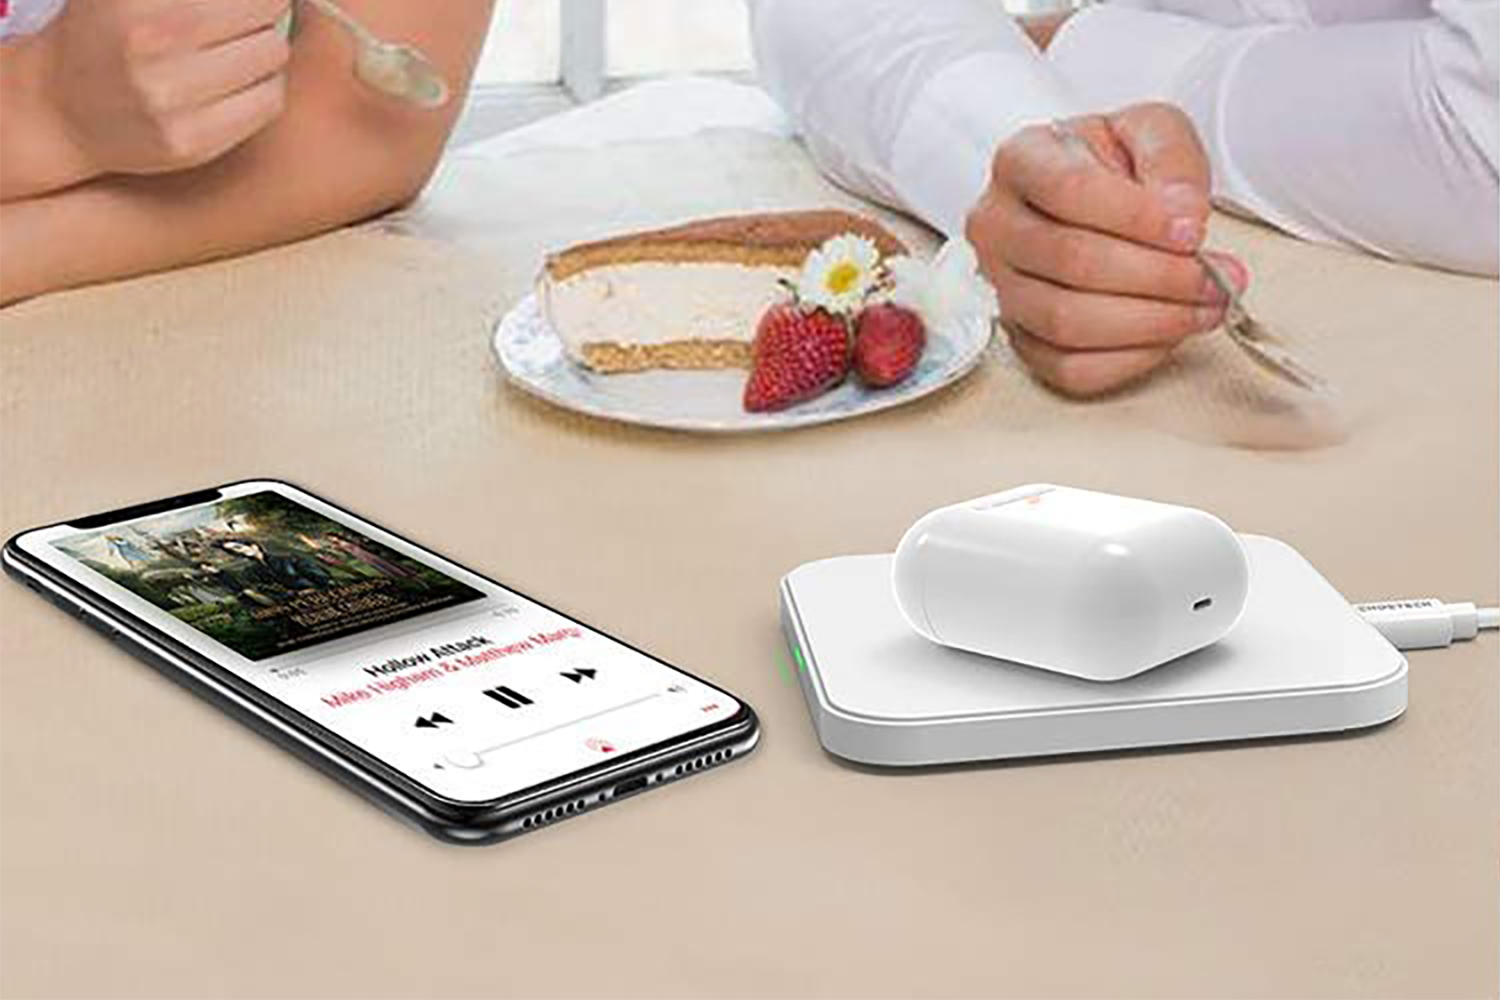 The pad even works with AirPods – if you bought the wireless charging version